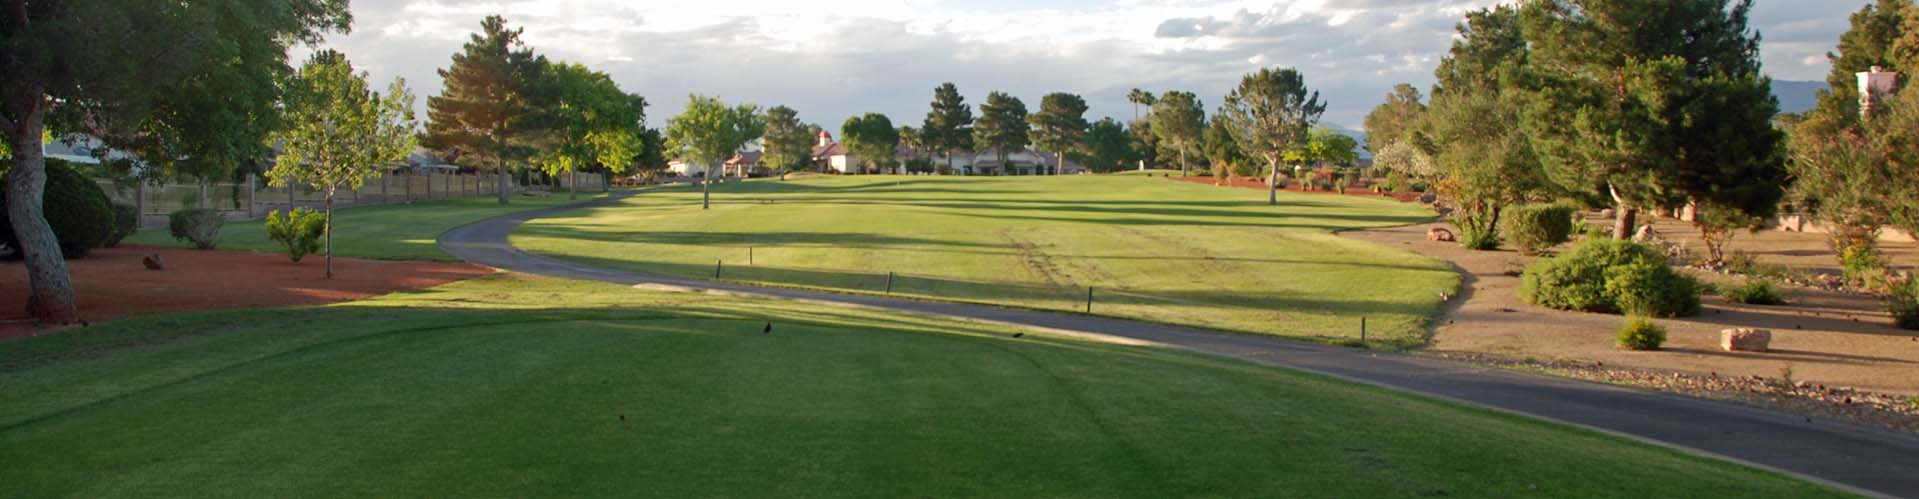 View of the practice area at Los Prados Golf Course